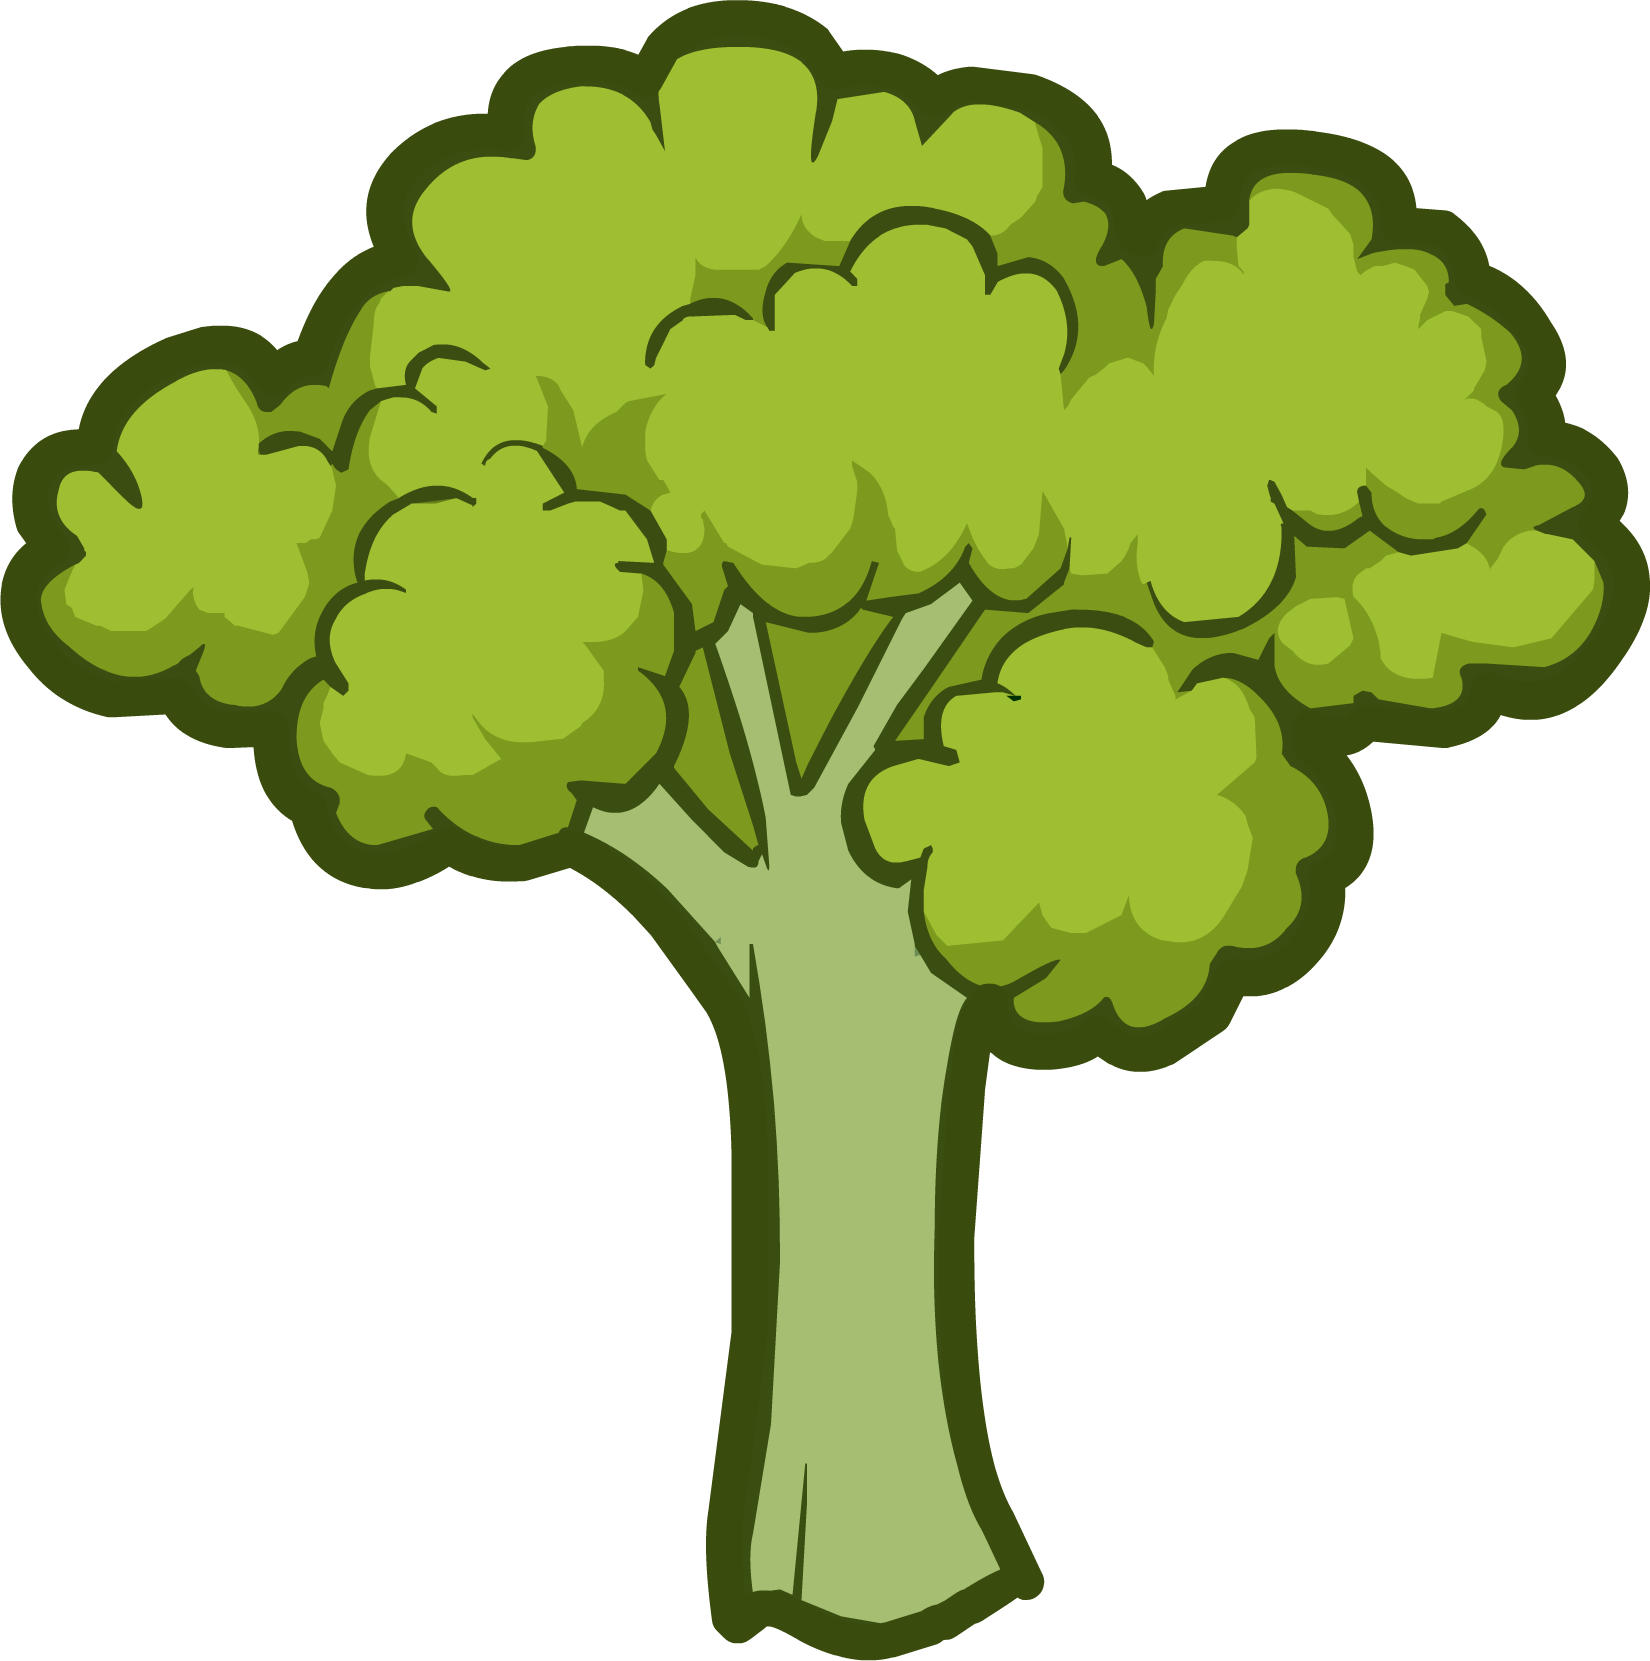 Image Broccoli Png Club Penguin Wiki The Free